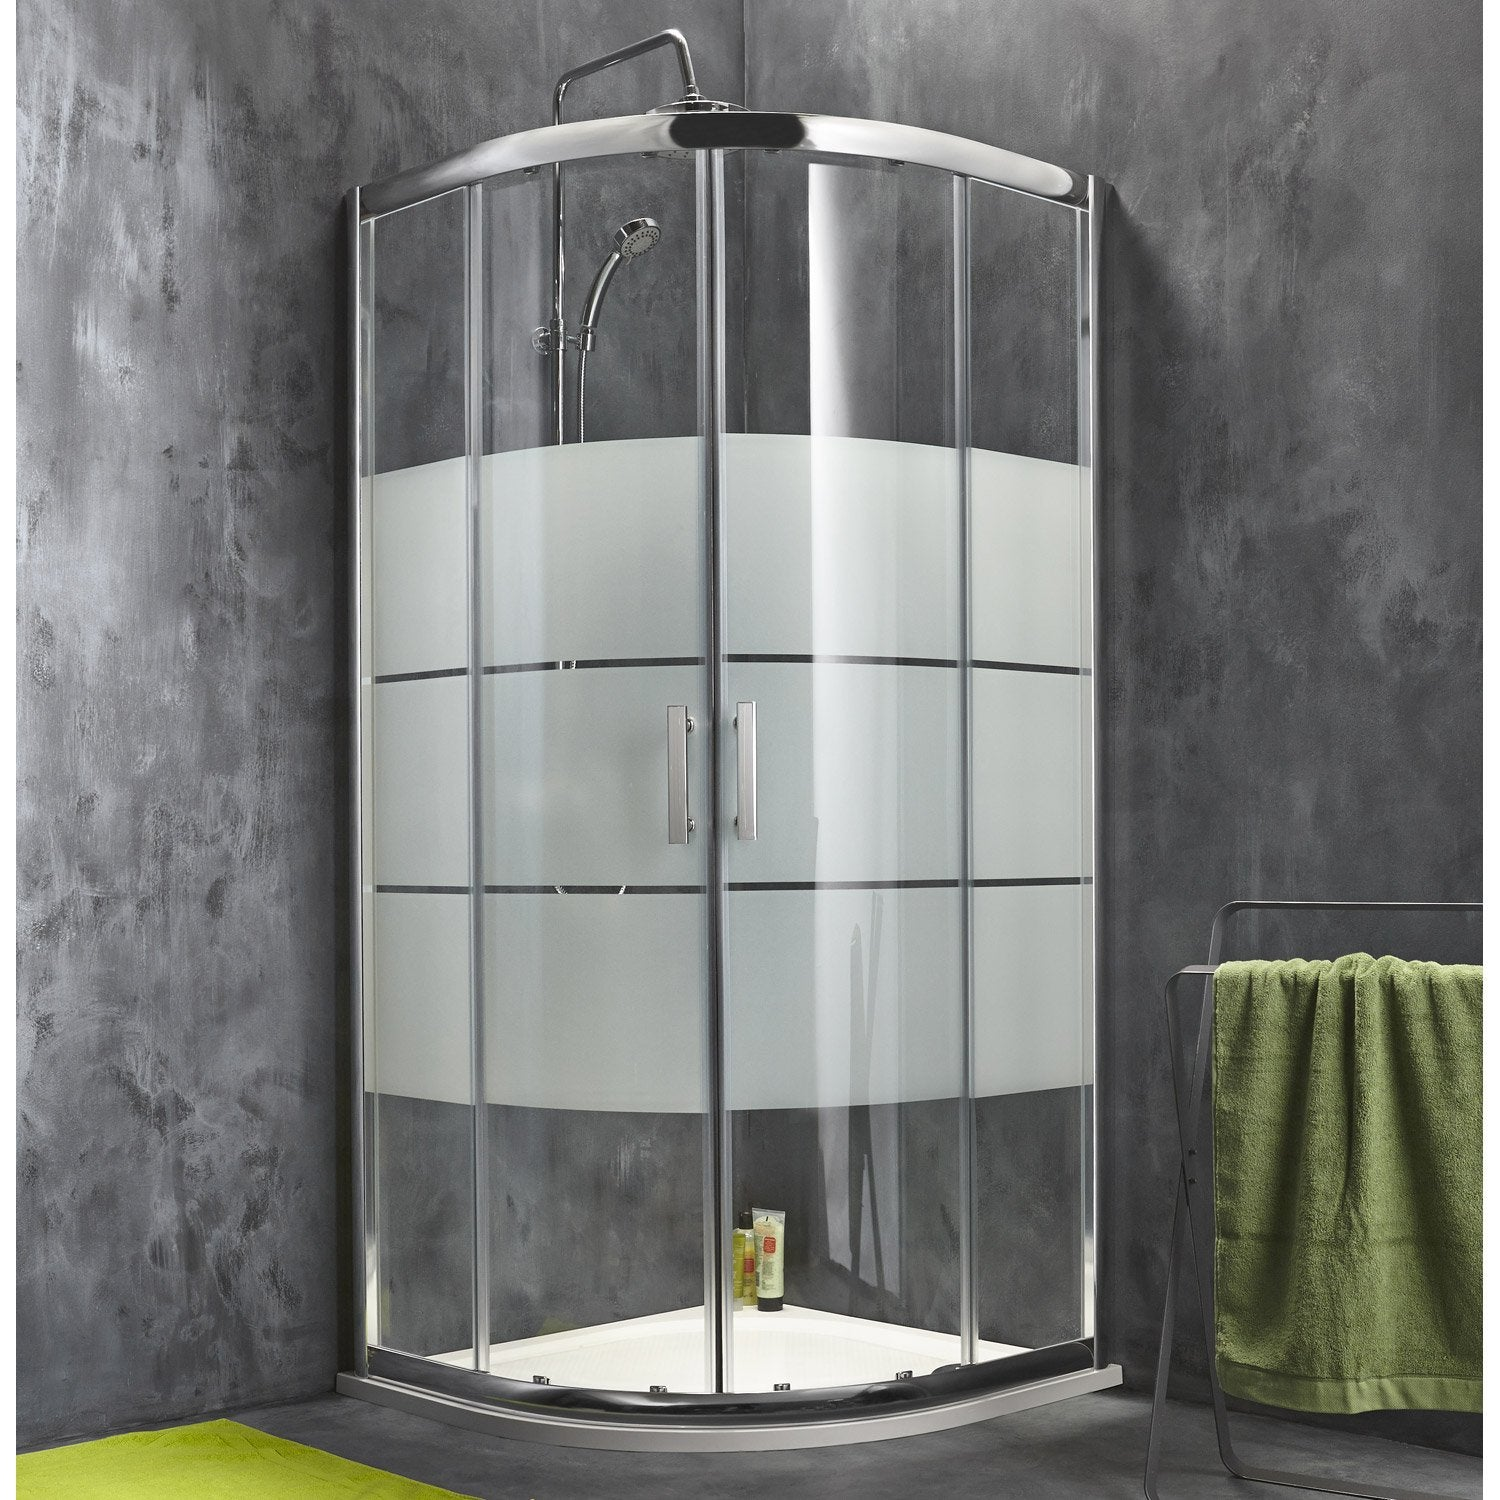 Porte de douche coulissante sensea optima 2 verre - Porte coulissante encastrable leroy merlin ...